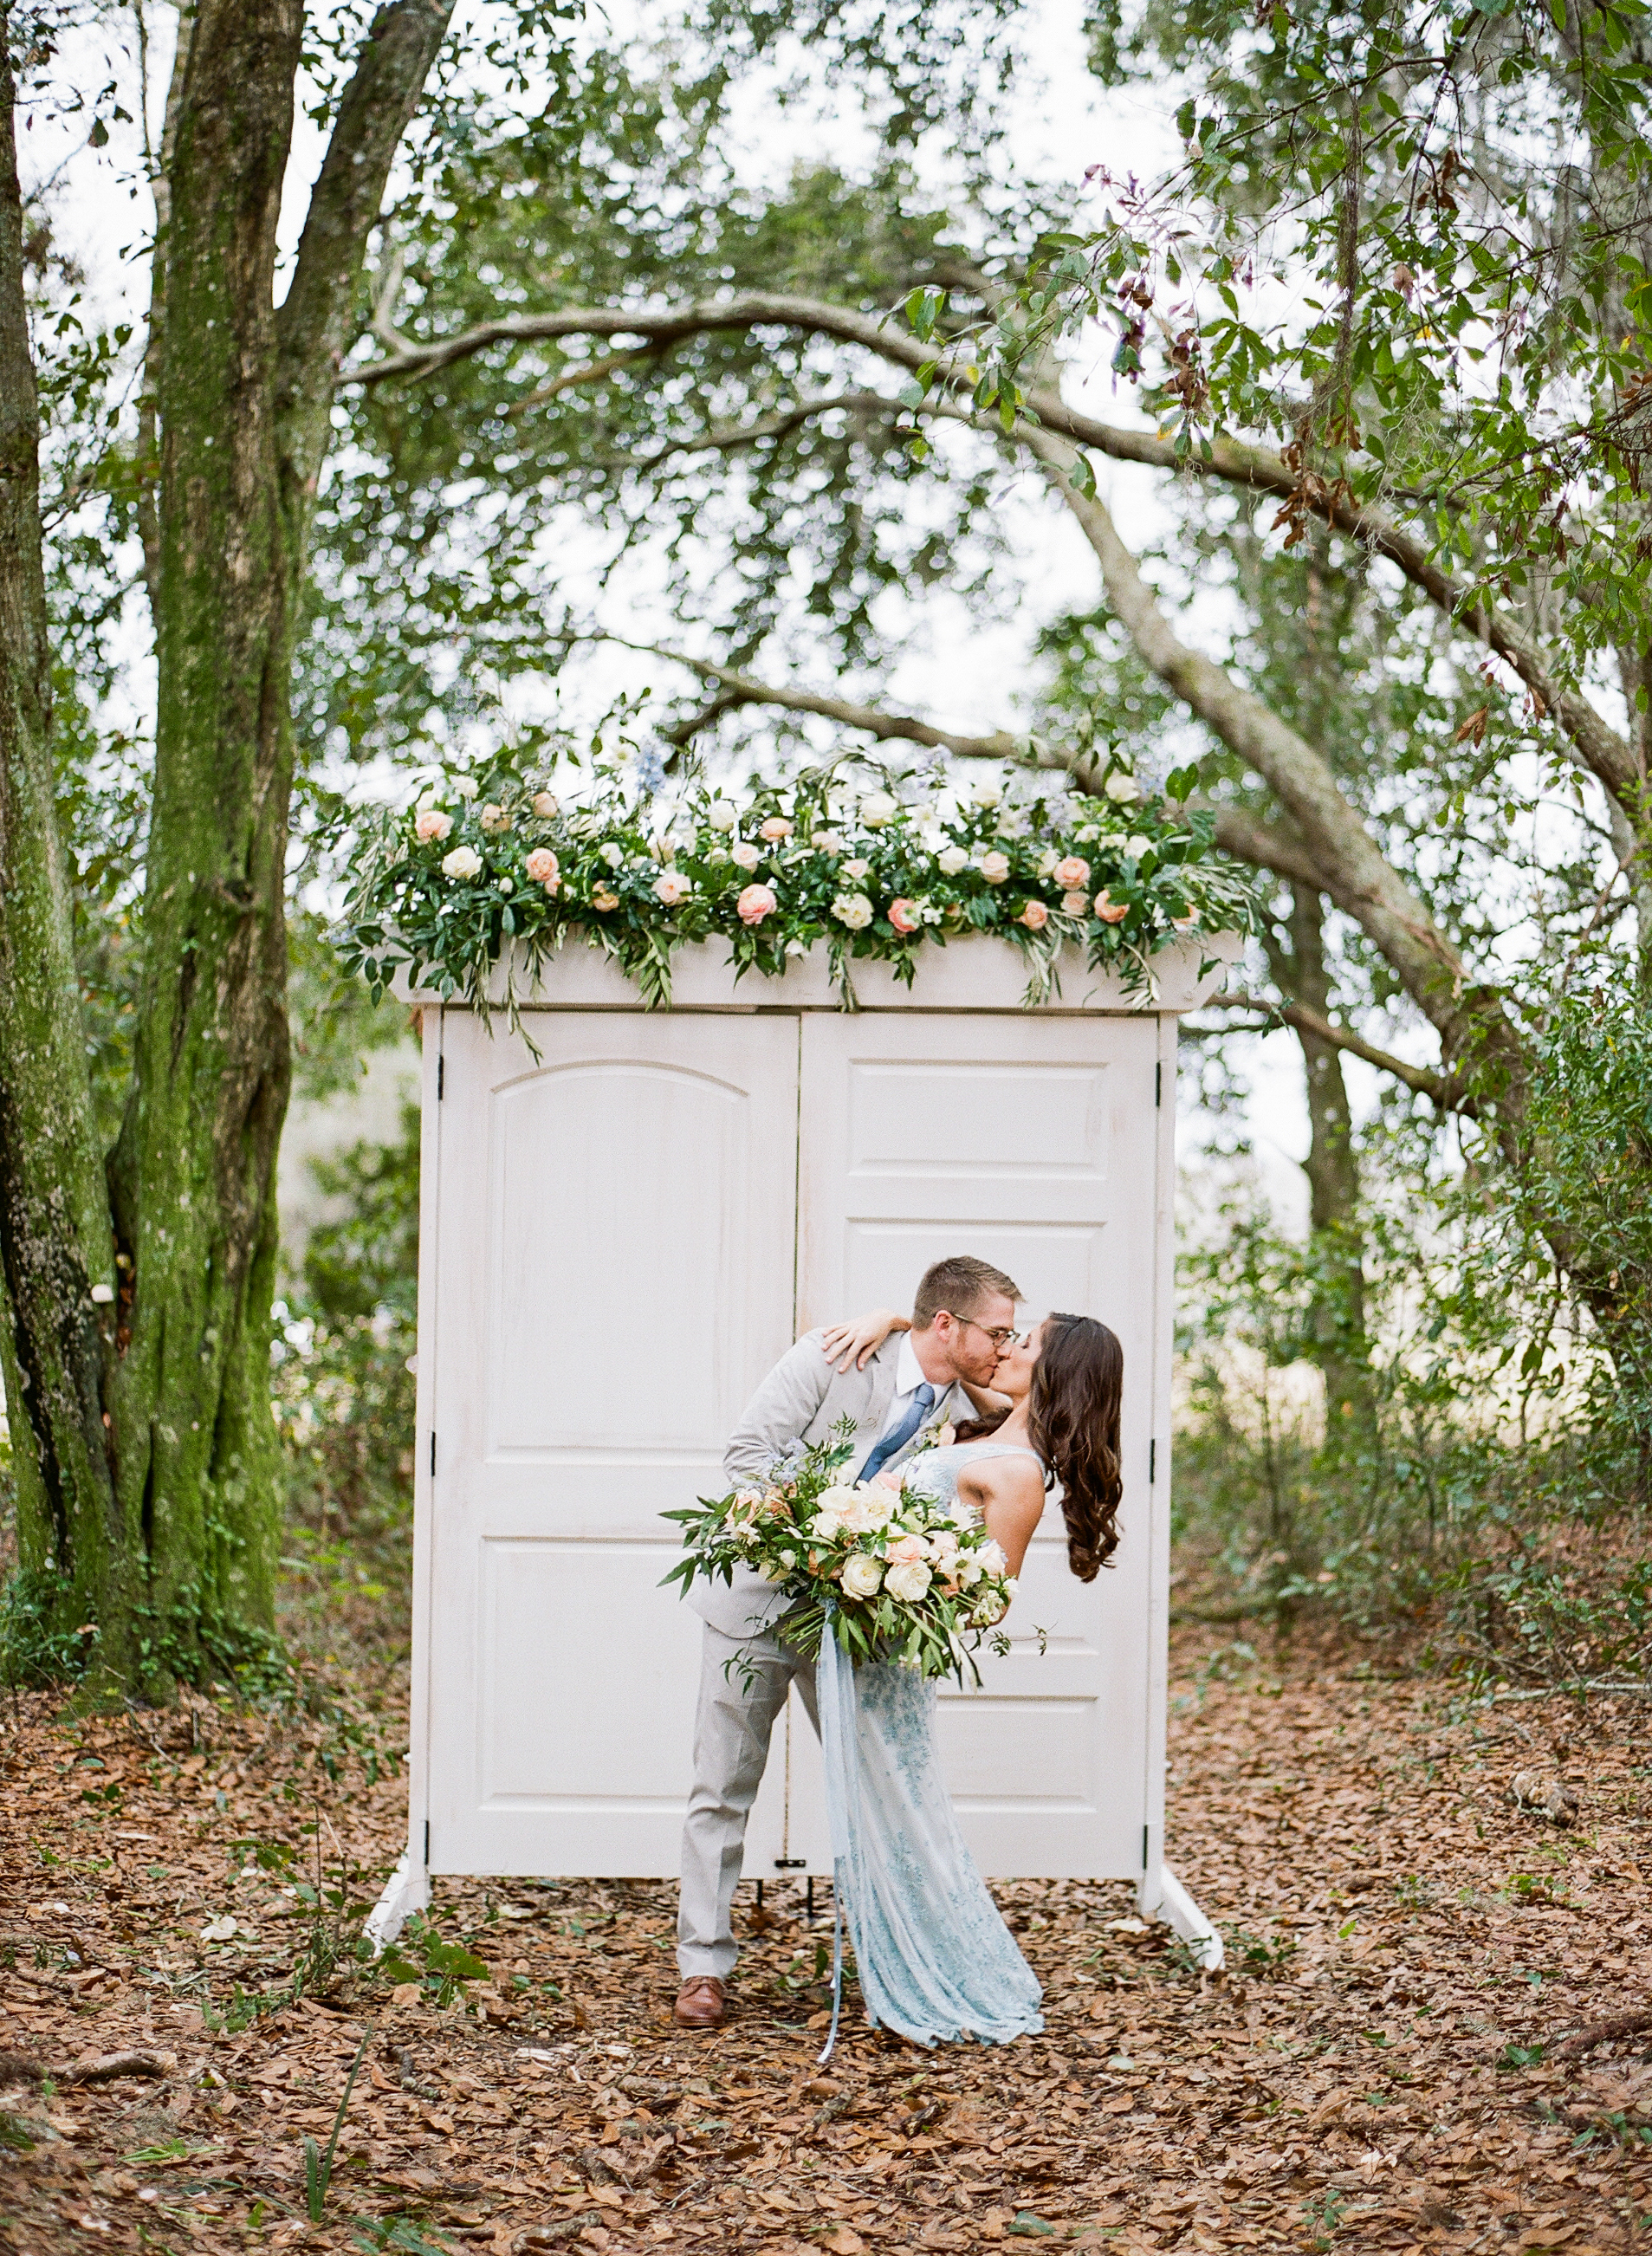 Tampa vintage wedding rentals